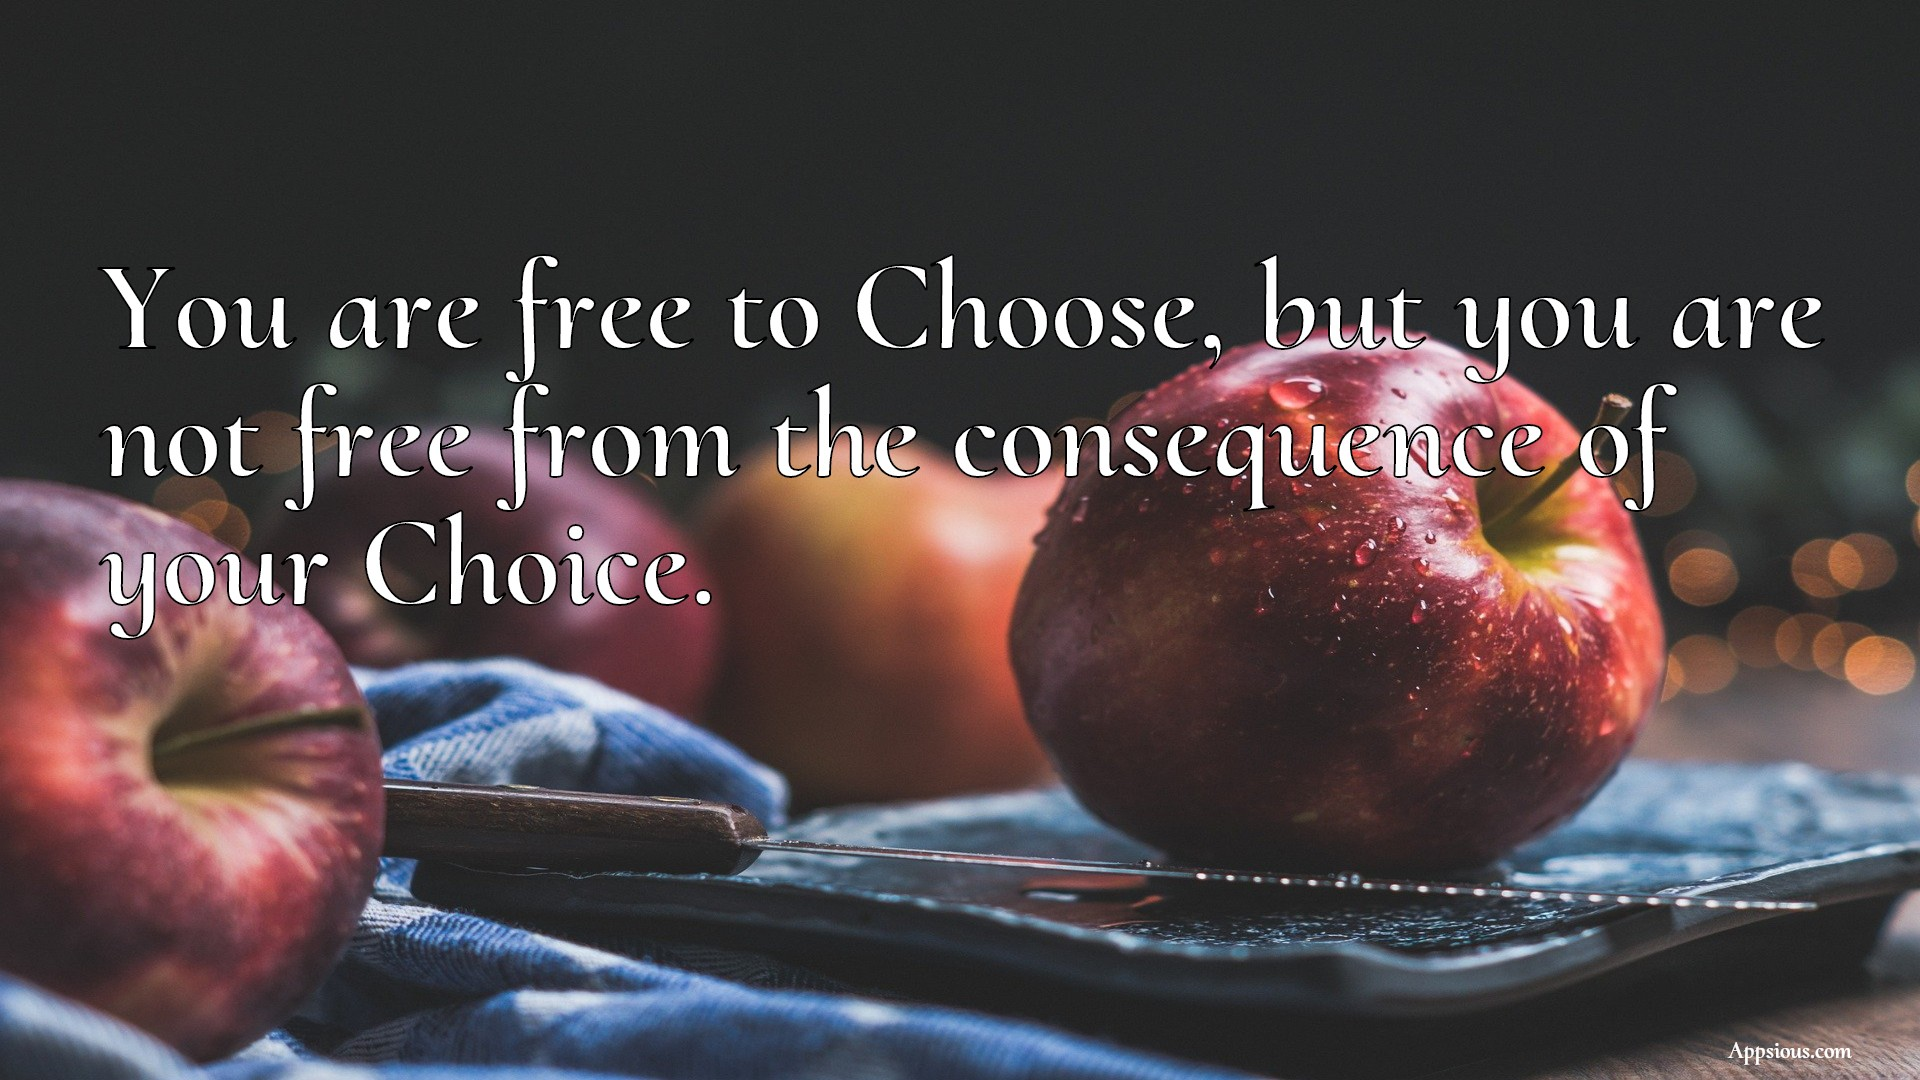 You are free to Choose, but you are not free from the consequence of your Choice.